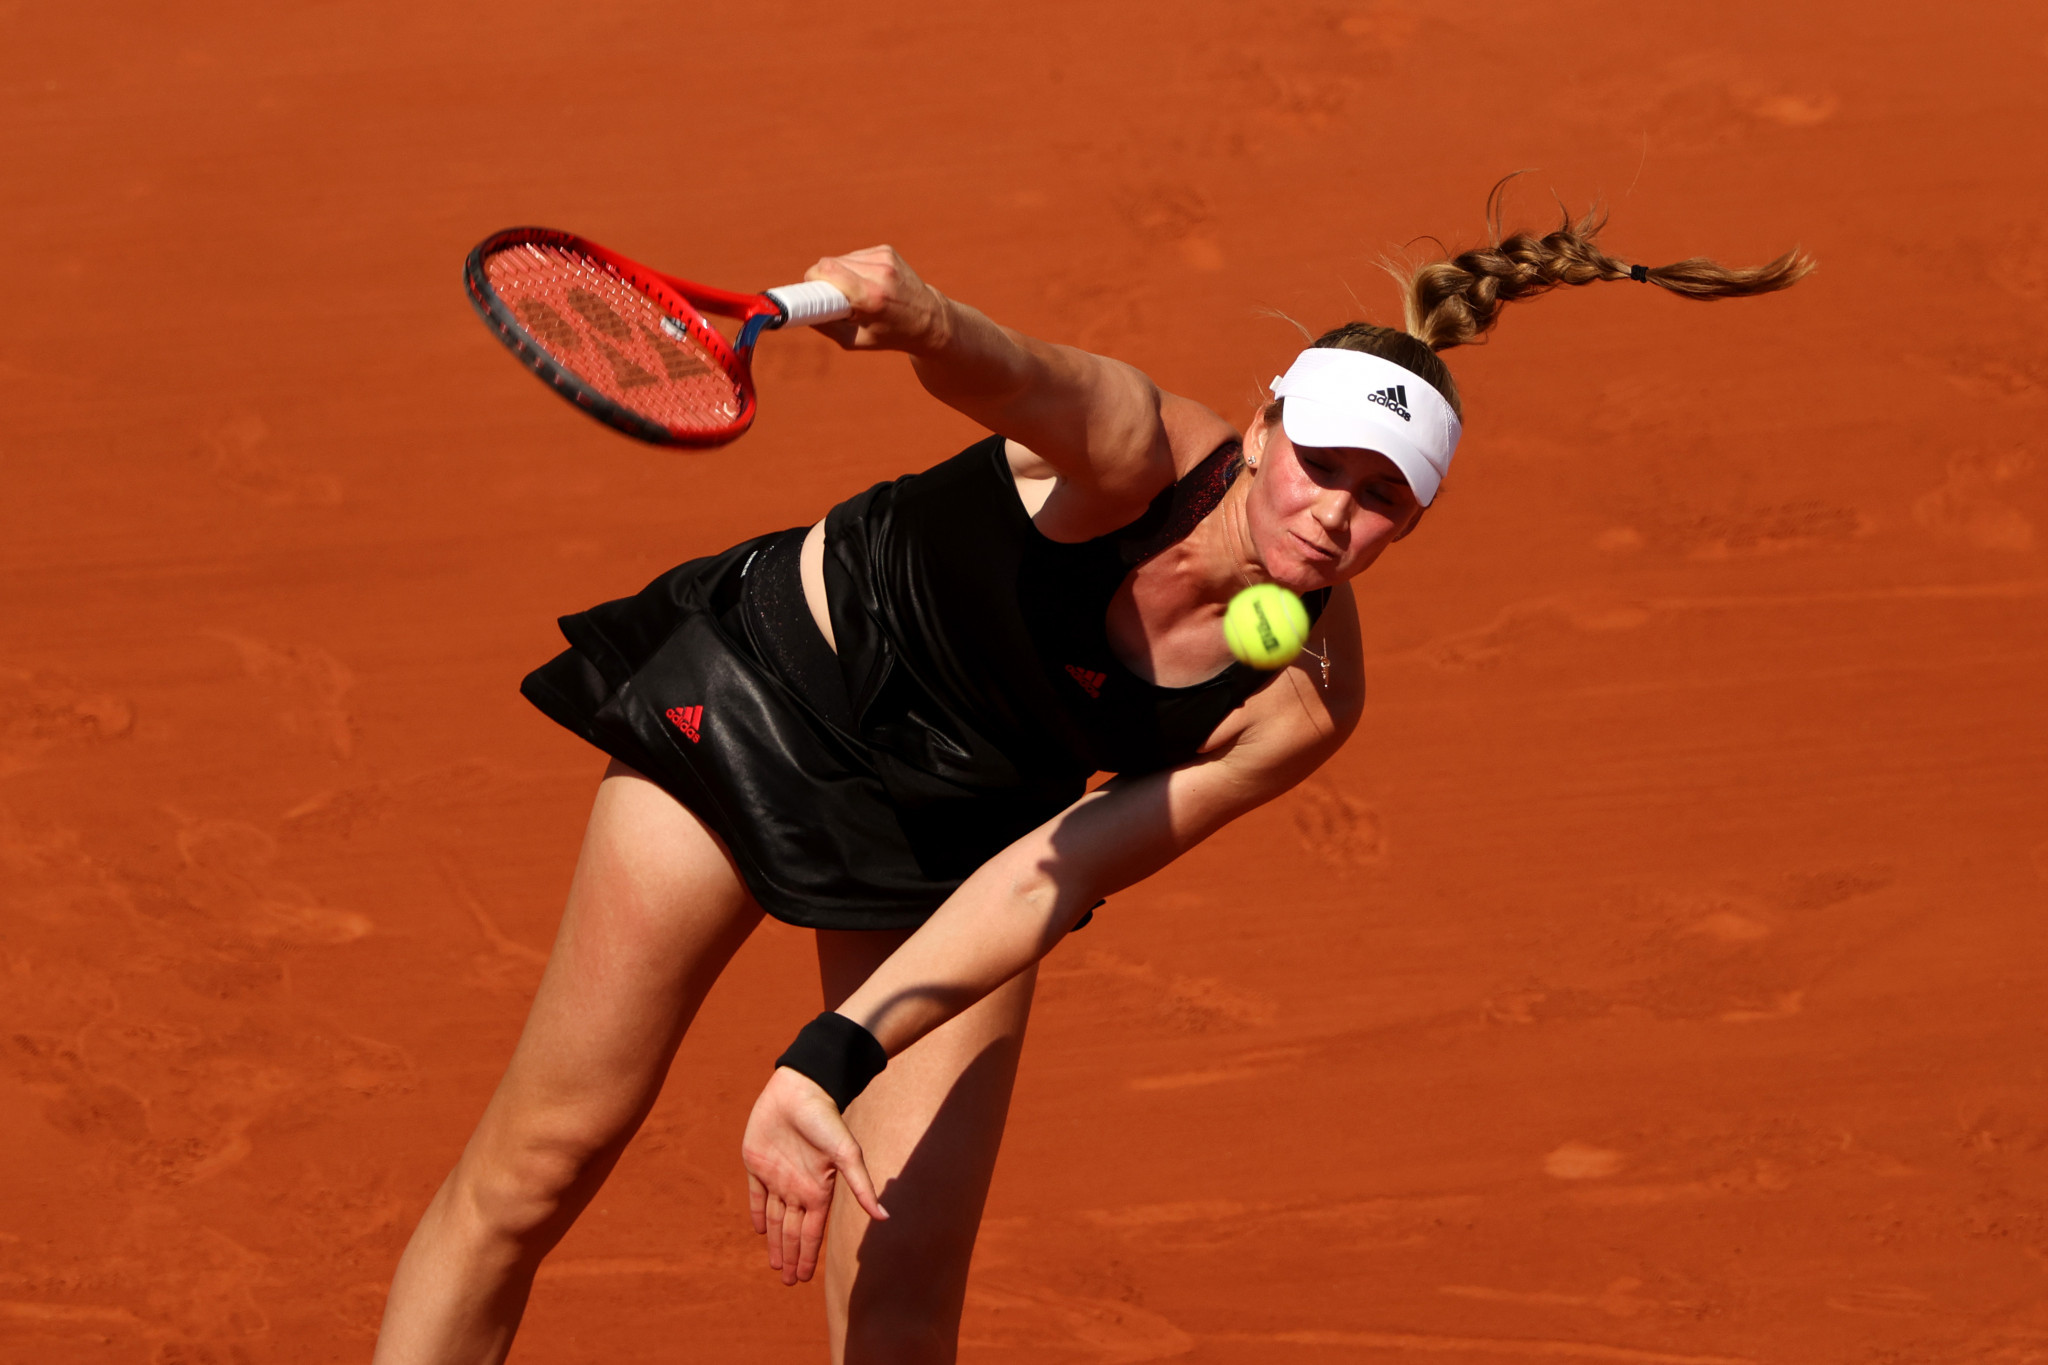 Elena Rybakina serves during her defeat to Pavlyuchenkova, who prevailed in a match lasting just over two and a half hours ©Getty Images